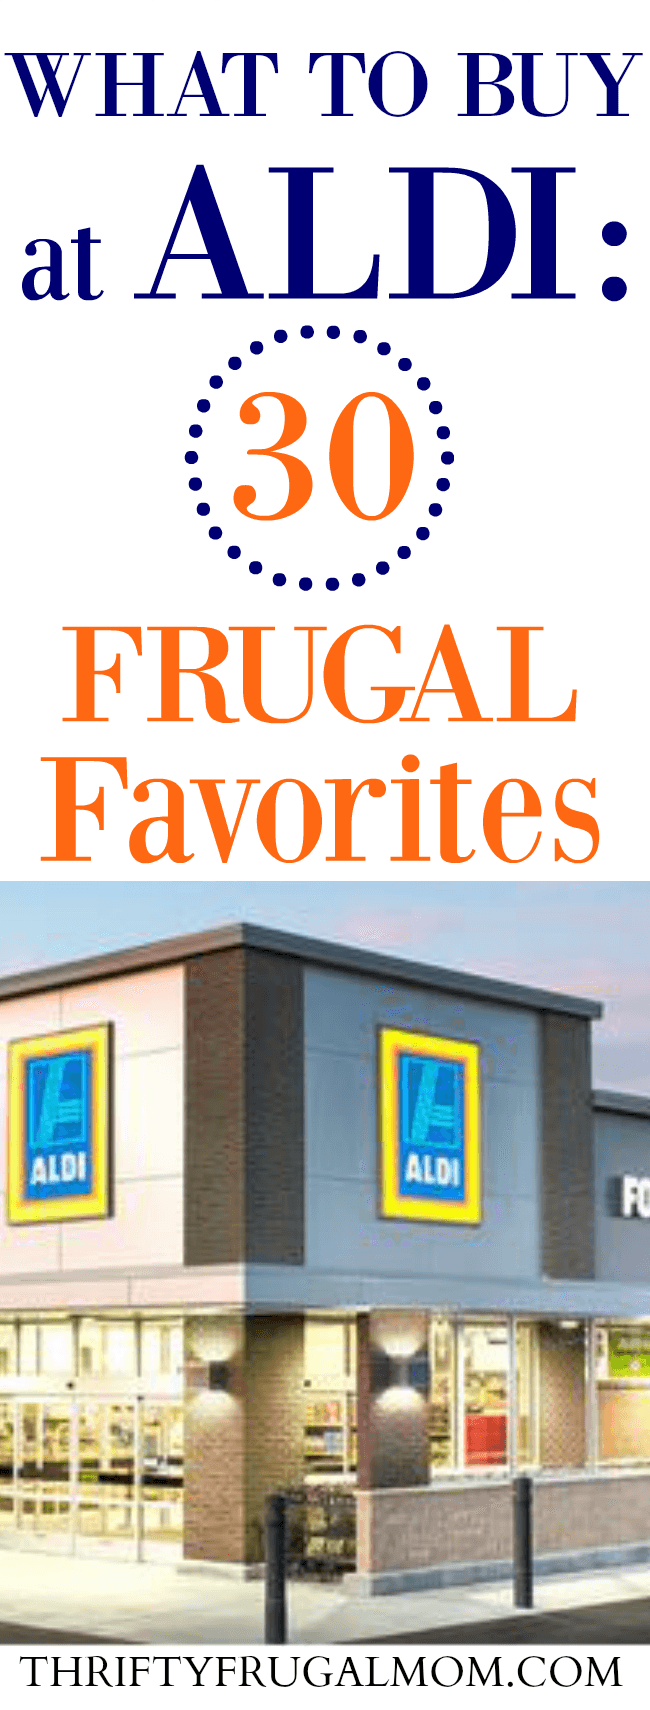 What to buy at Aldi- frugal favorites